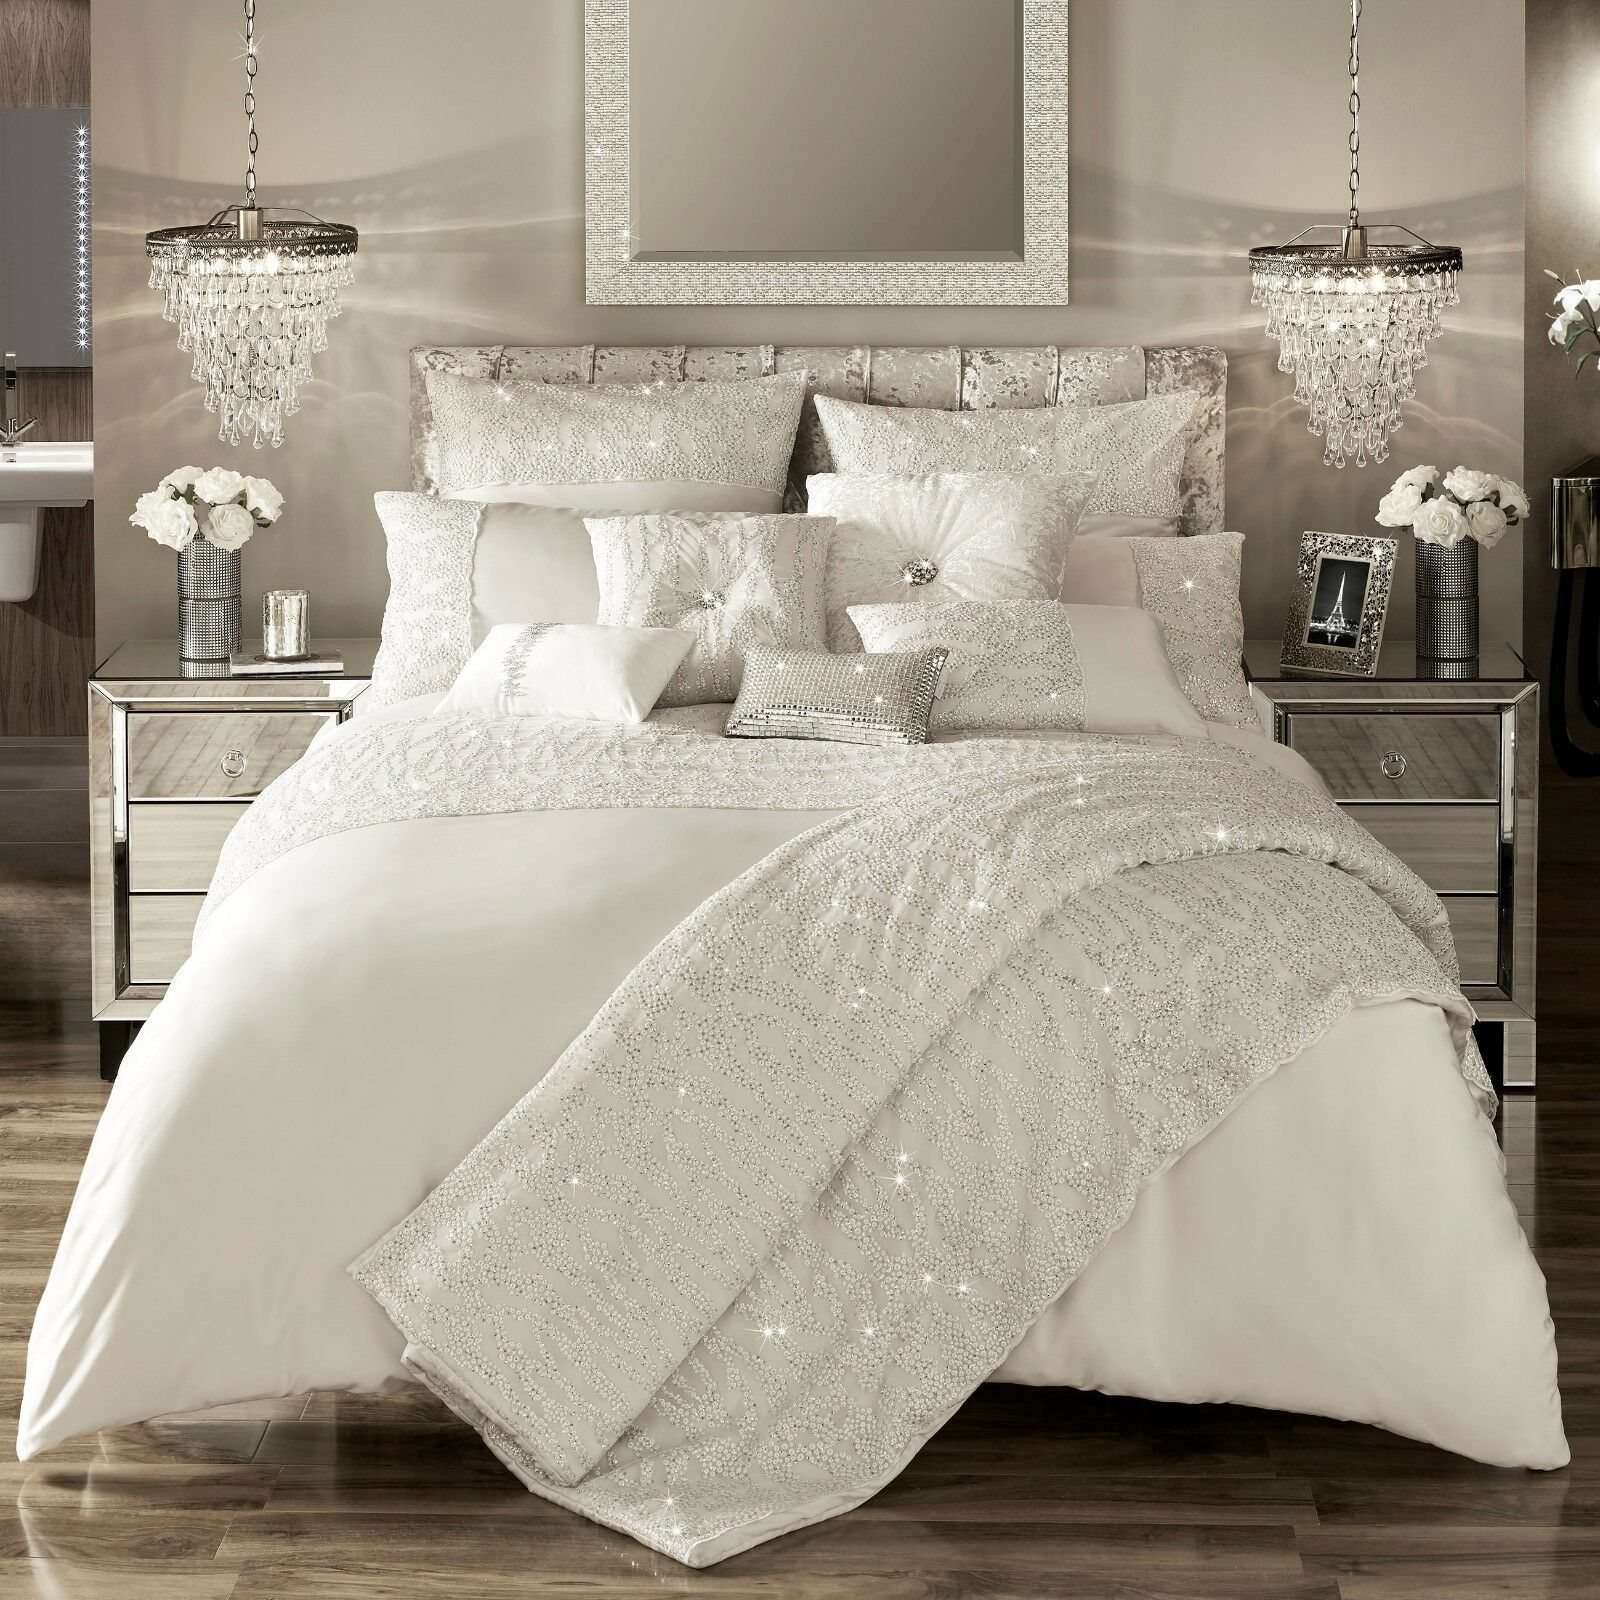 Kylie Minogue Bedding Darcey Oyster Duvet Cover Throw Cushion Sep 2017 New